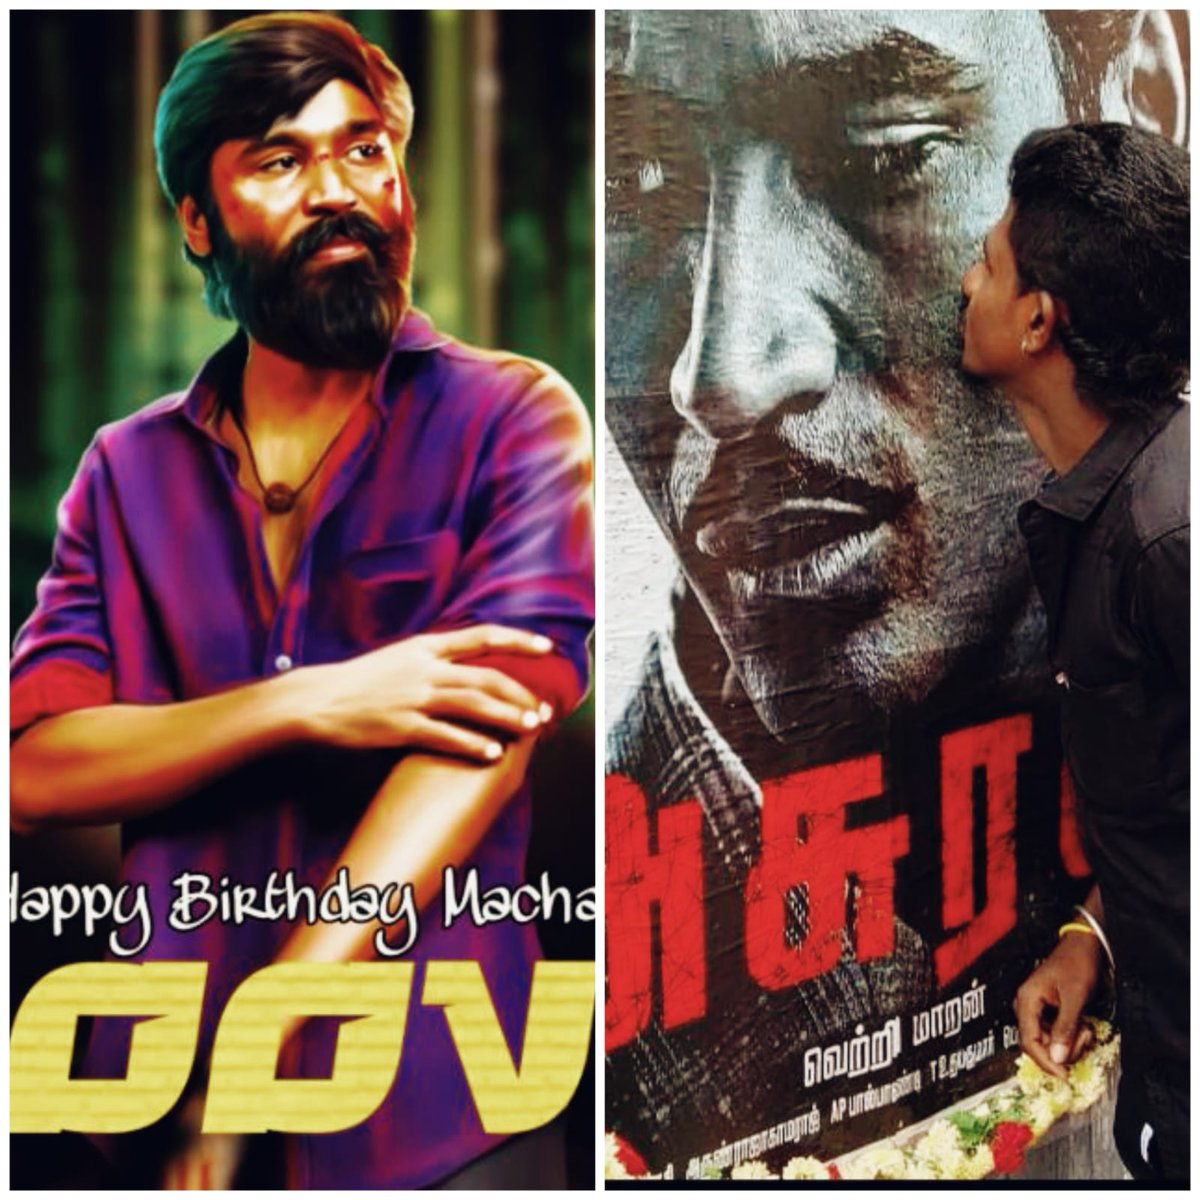 Wish you Happy wonderful birthday our @TerrificDBloods boy @Nathampoova 💐  Lots of Happy And Peace 😊Enjoy Your Day!!❤️ Once HDB @Nathampoova 🔥  Best Wishes From  Team #TDB 😊💥  @dhanushkraja @TerrificDBloods  #Karnan #TDB